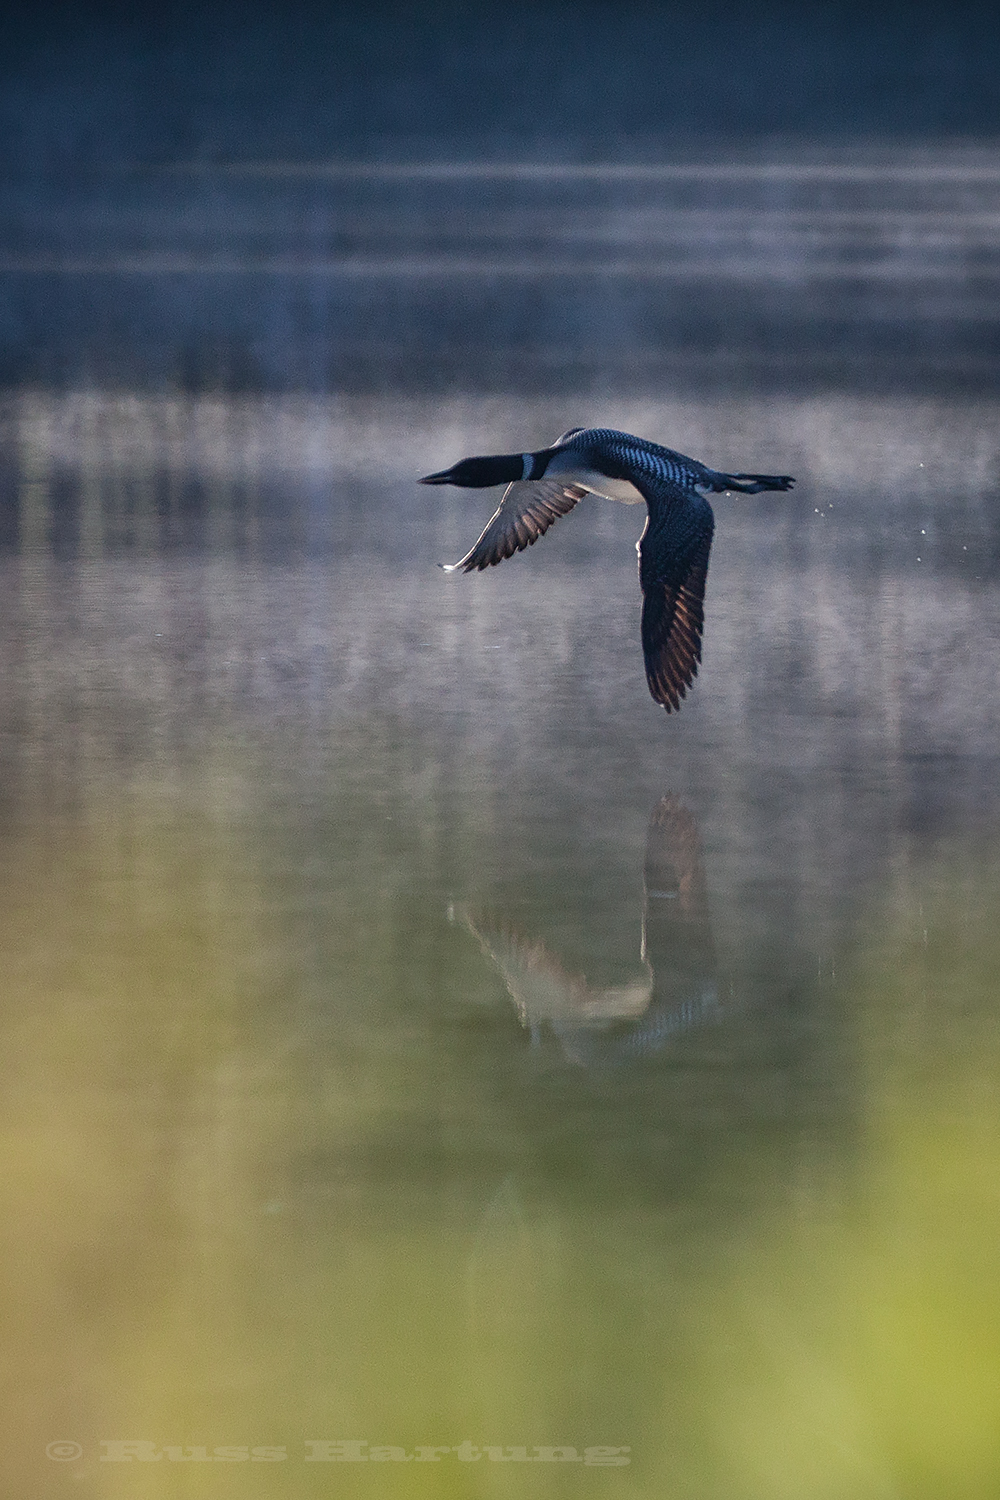 A loon flying low over a lake in the Adirondacks. The backlighting and still water create a great reflection.